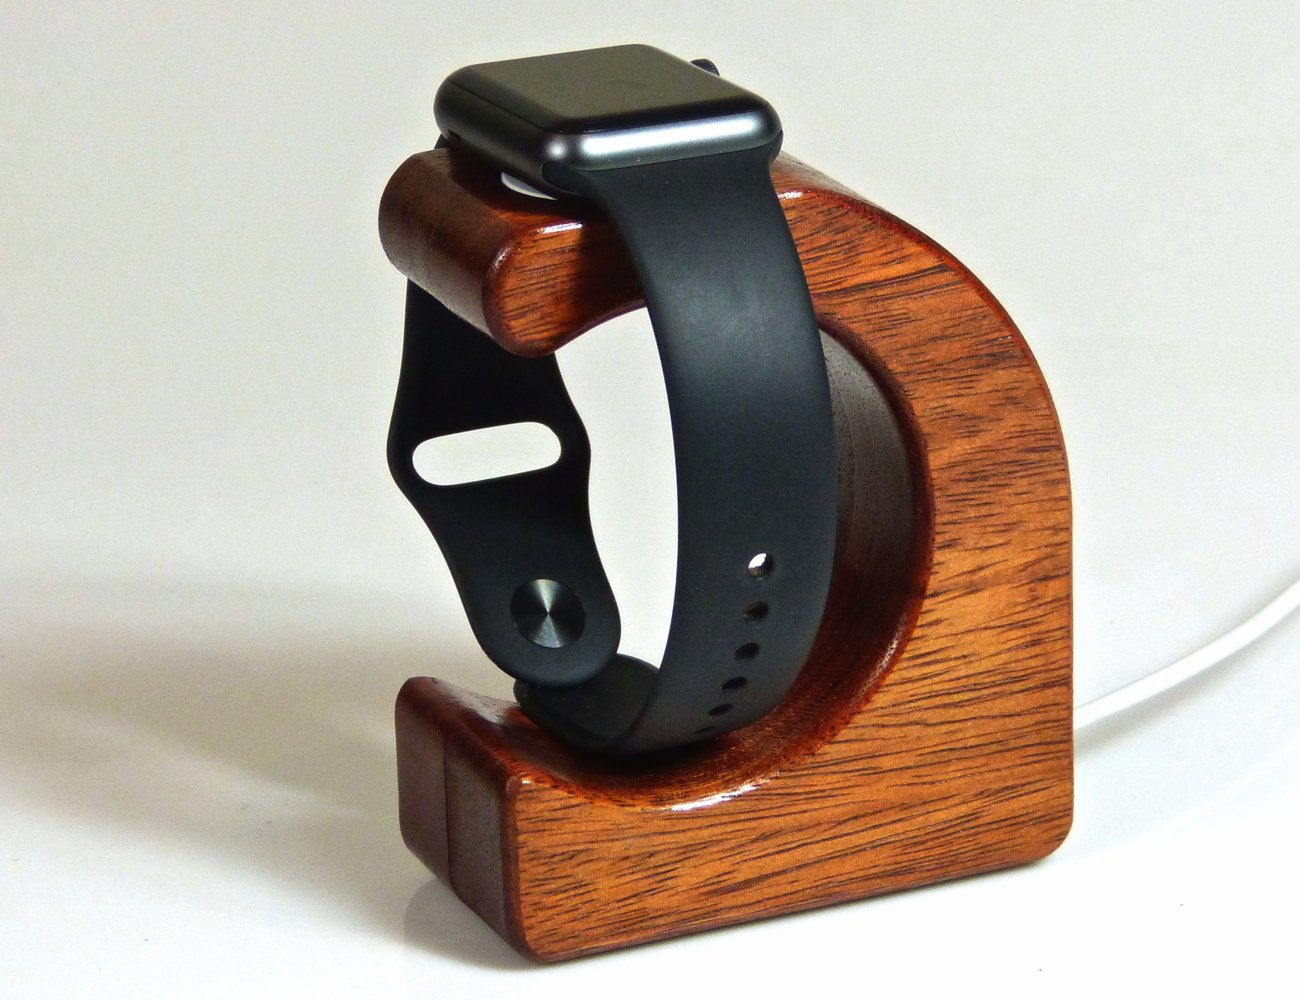 The WAVE Apple Watch Charging Stand